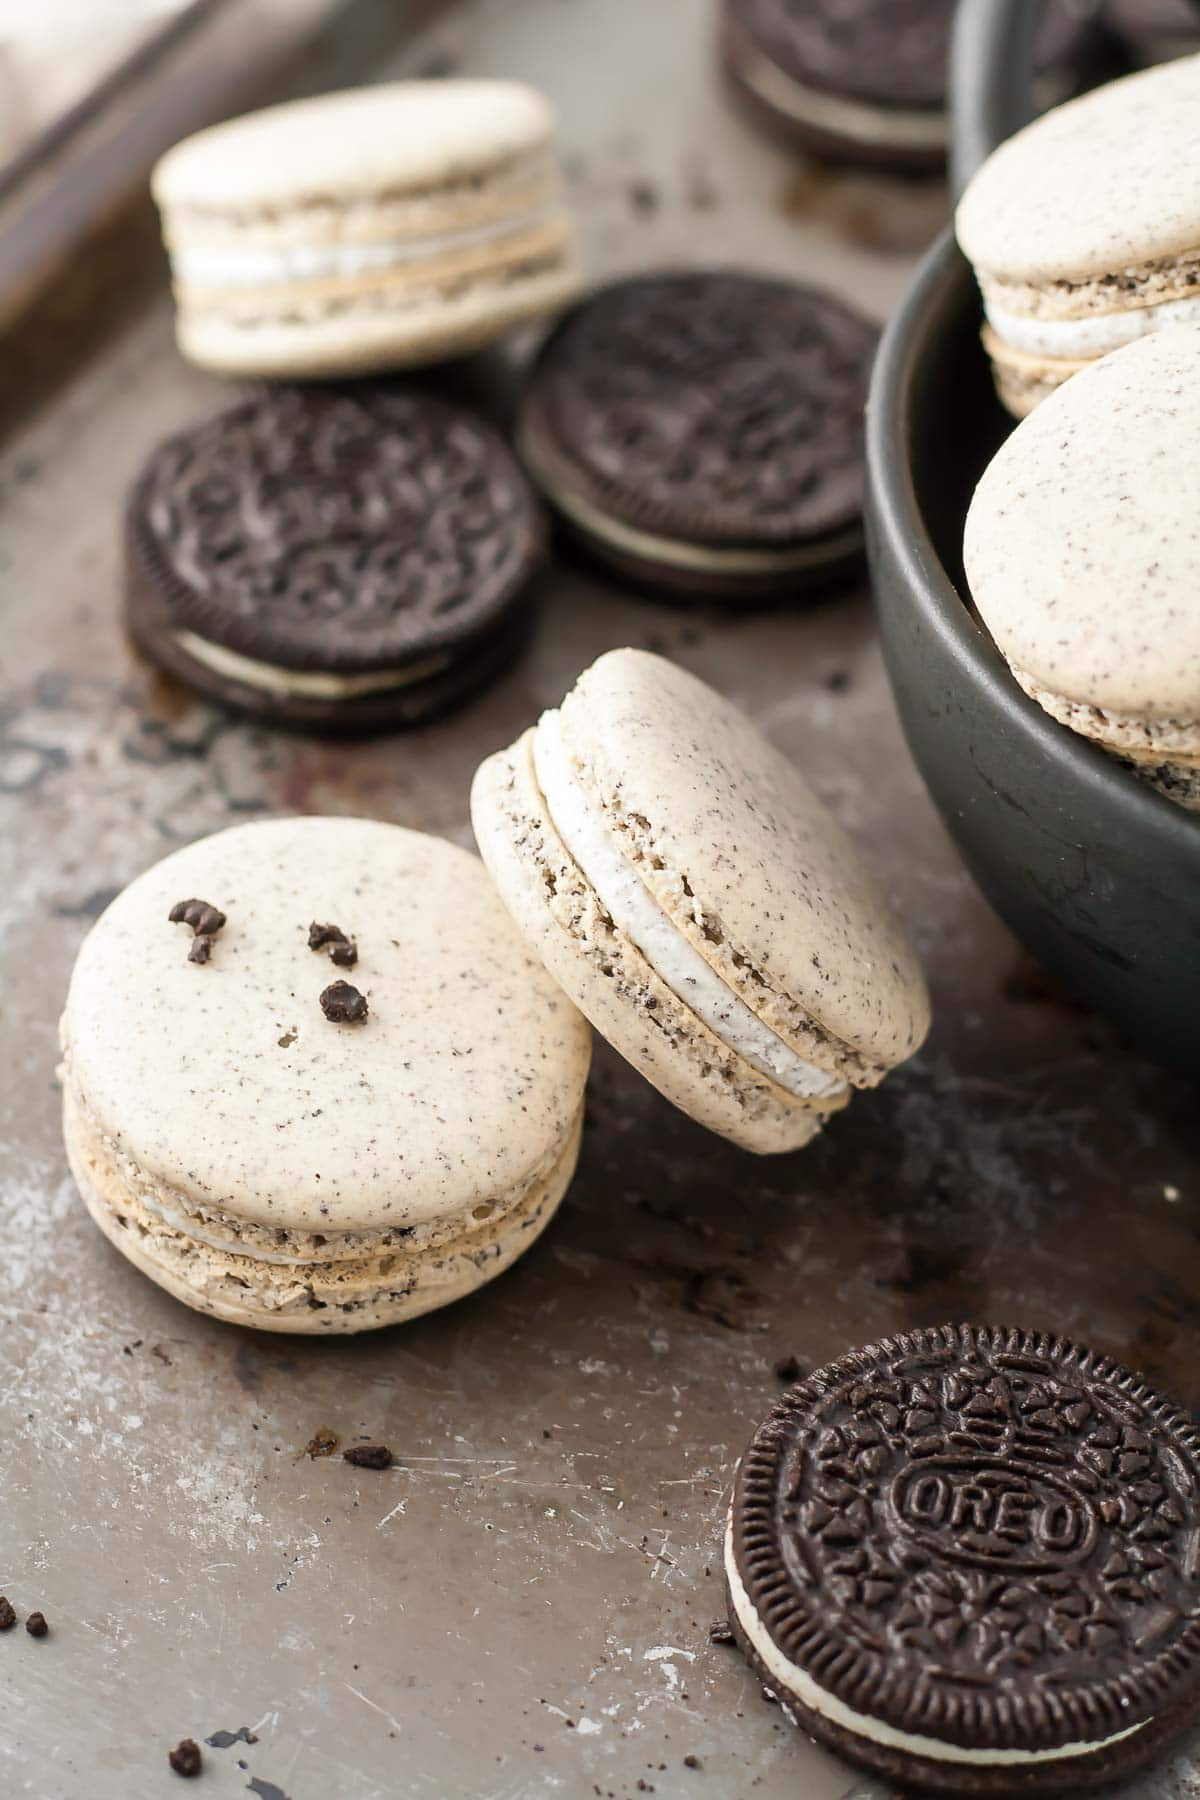 Oreo macarons with Oreo filling.